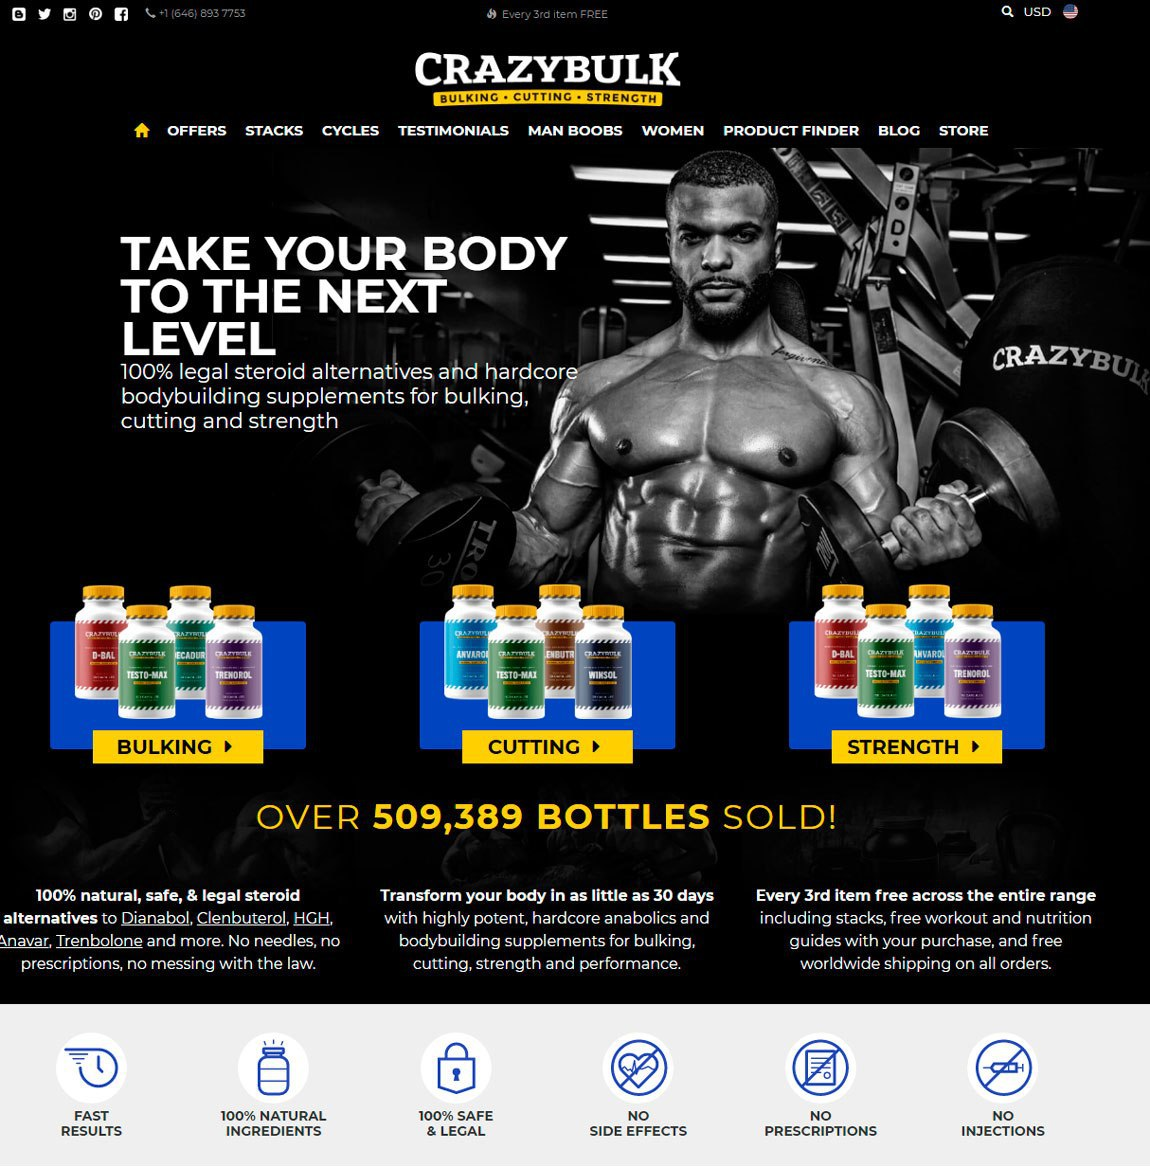 What is the best supplement for bulking